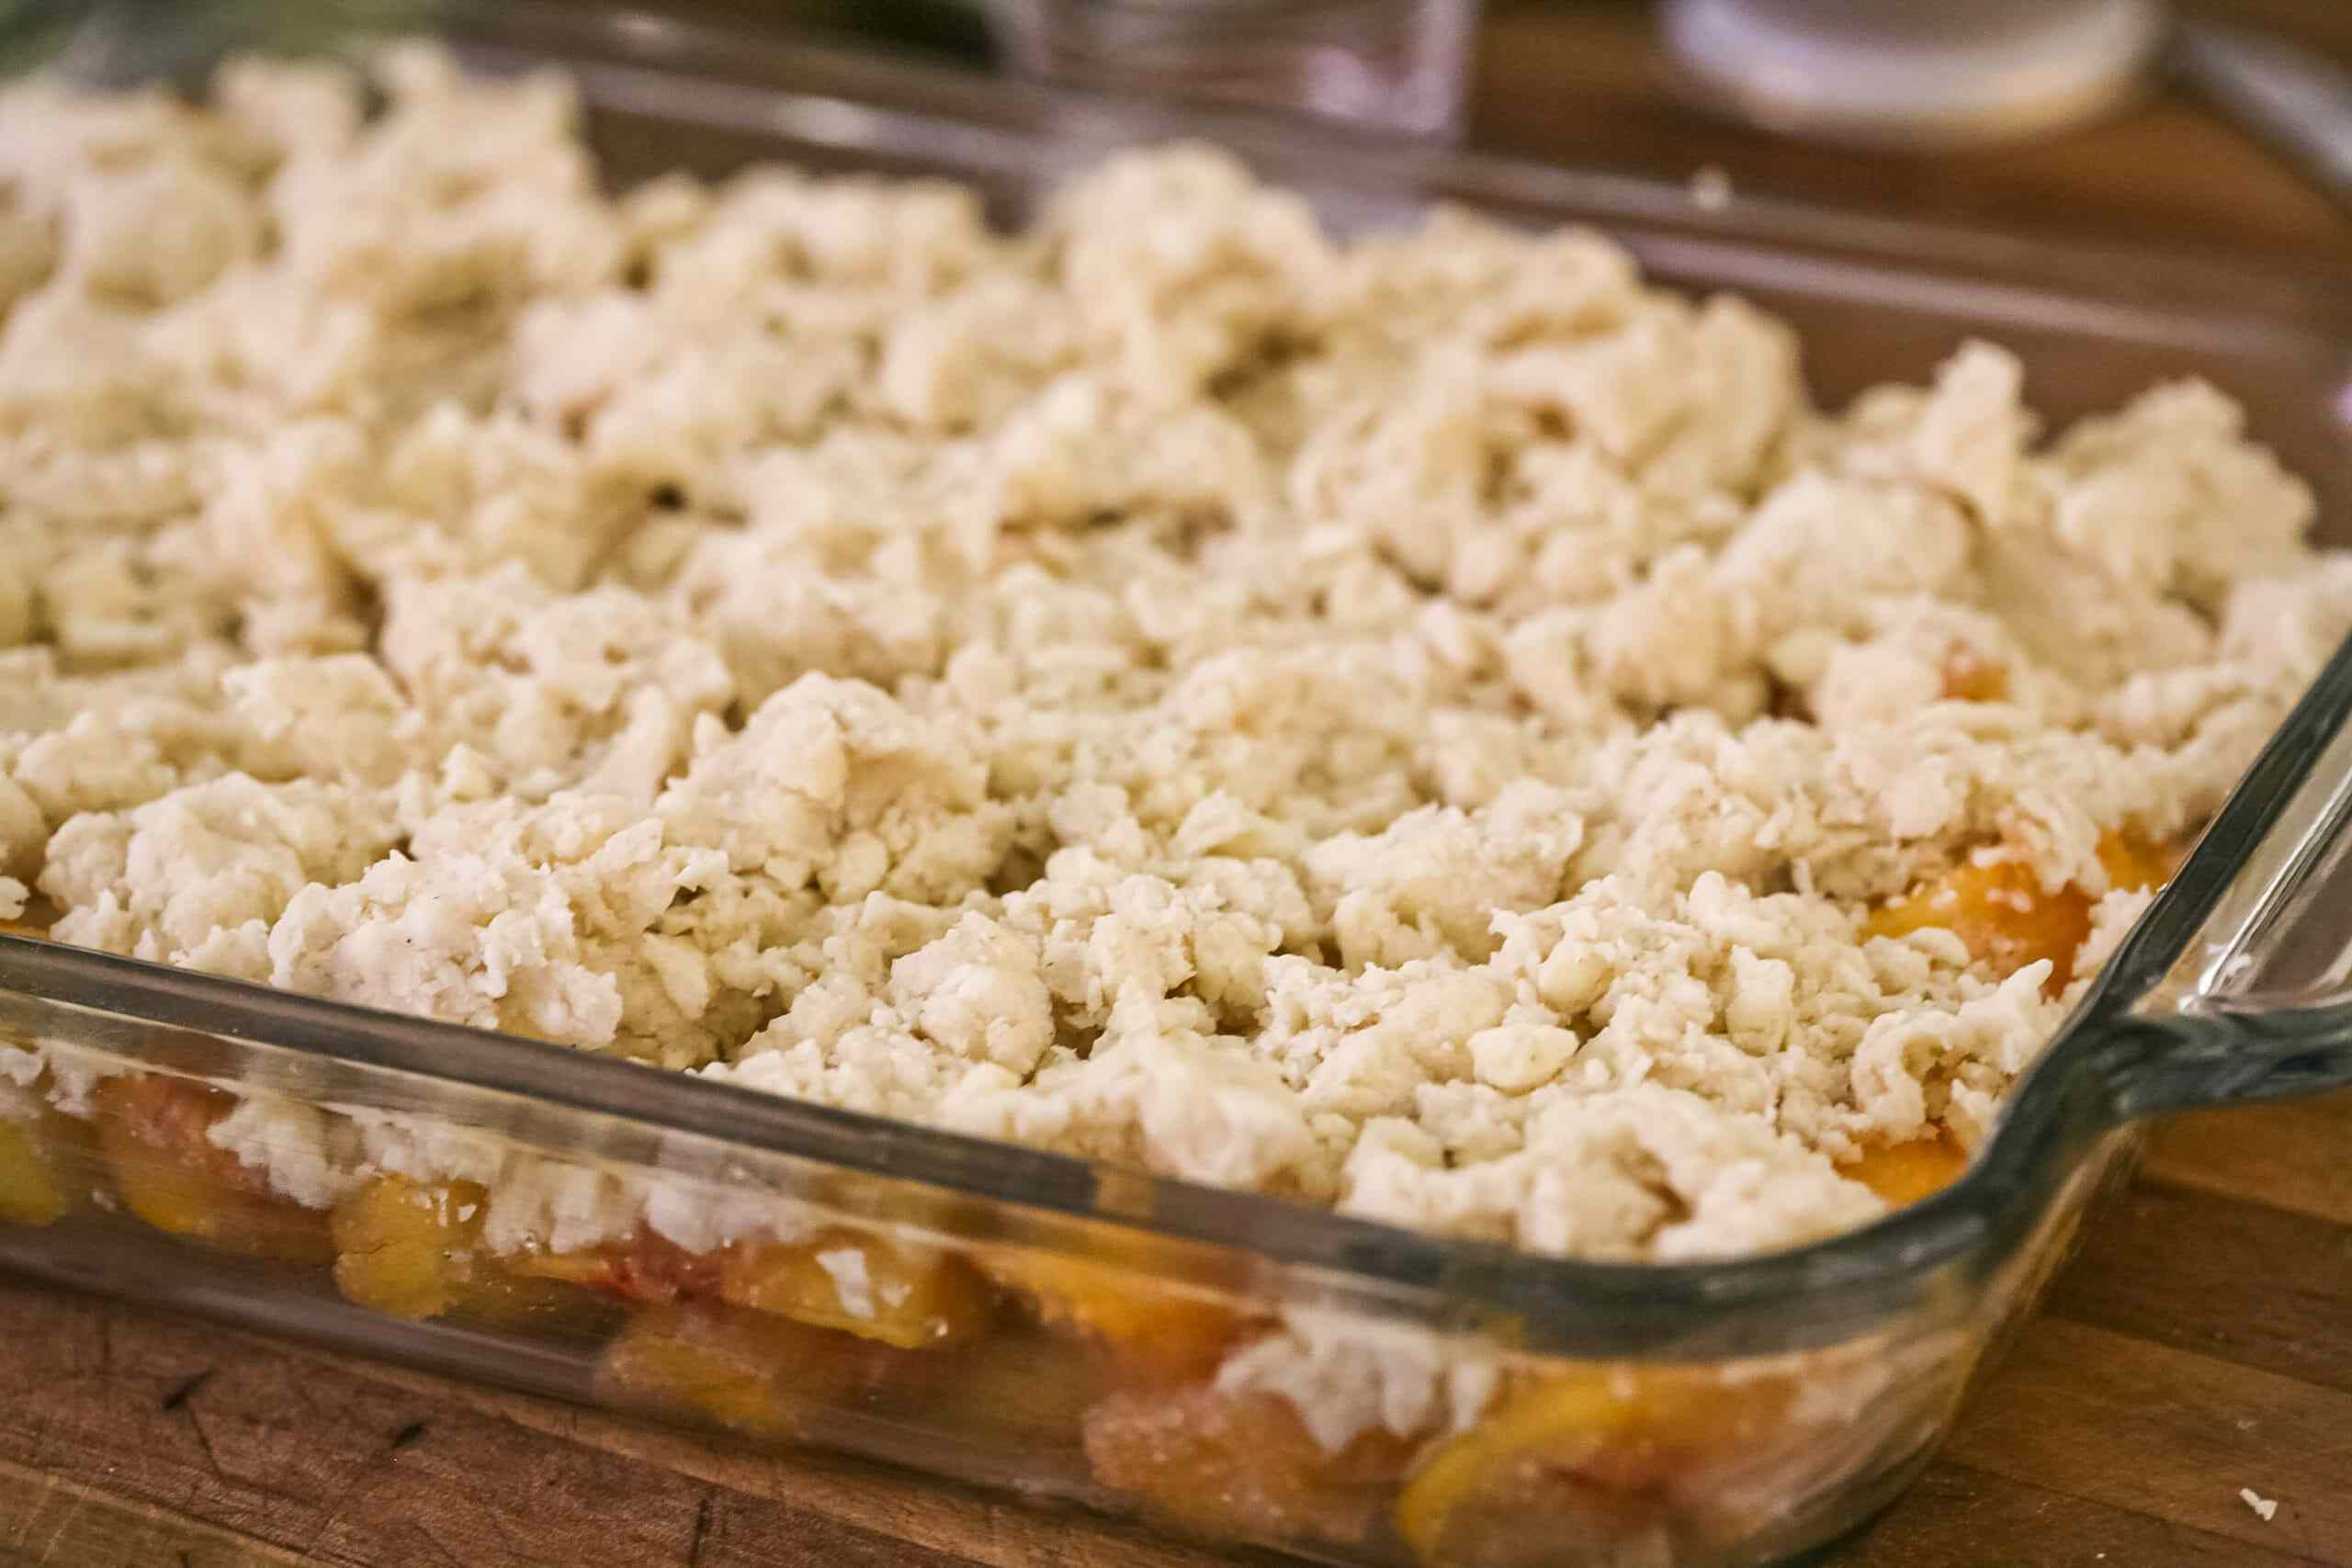 Easy peach cobbler topped with crumbled biscuit topping